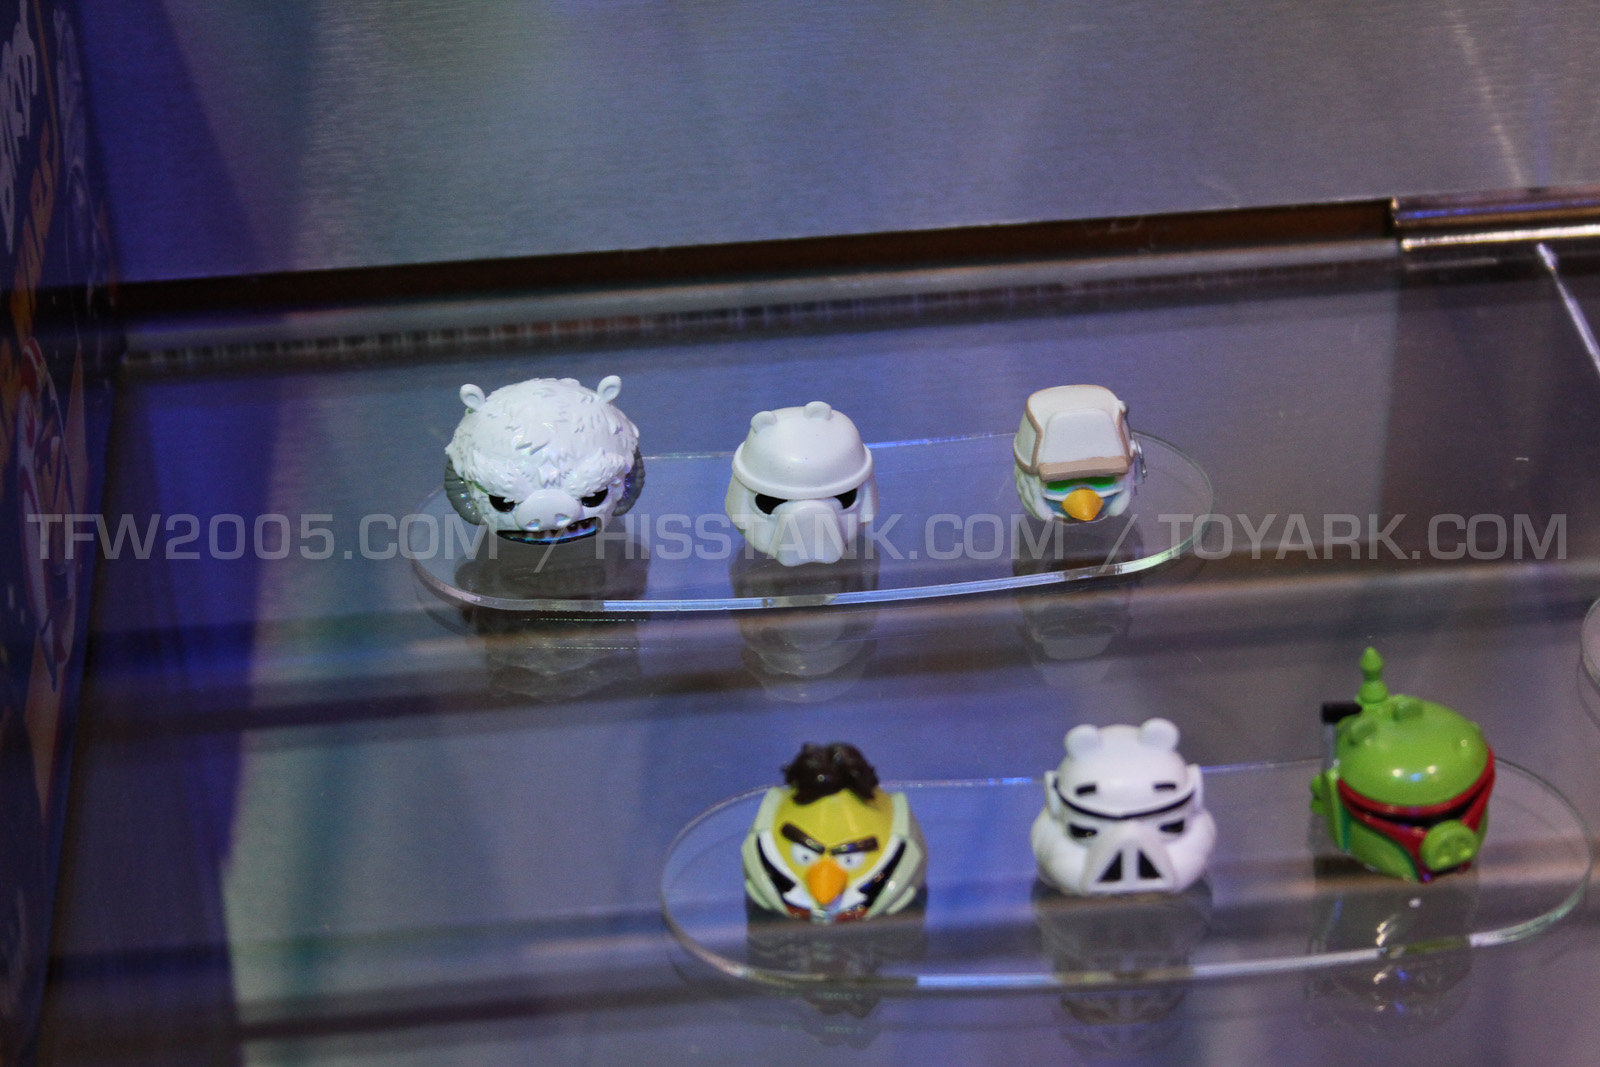 Angry birds star wars toys from toy fair 2013